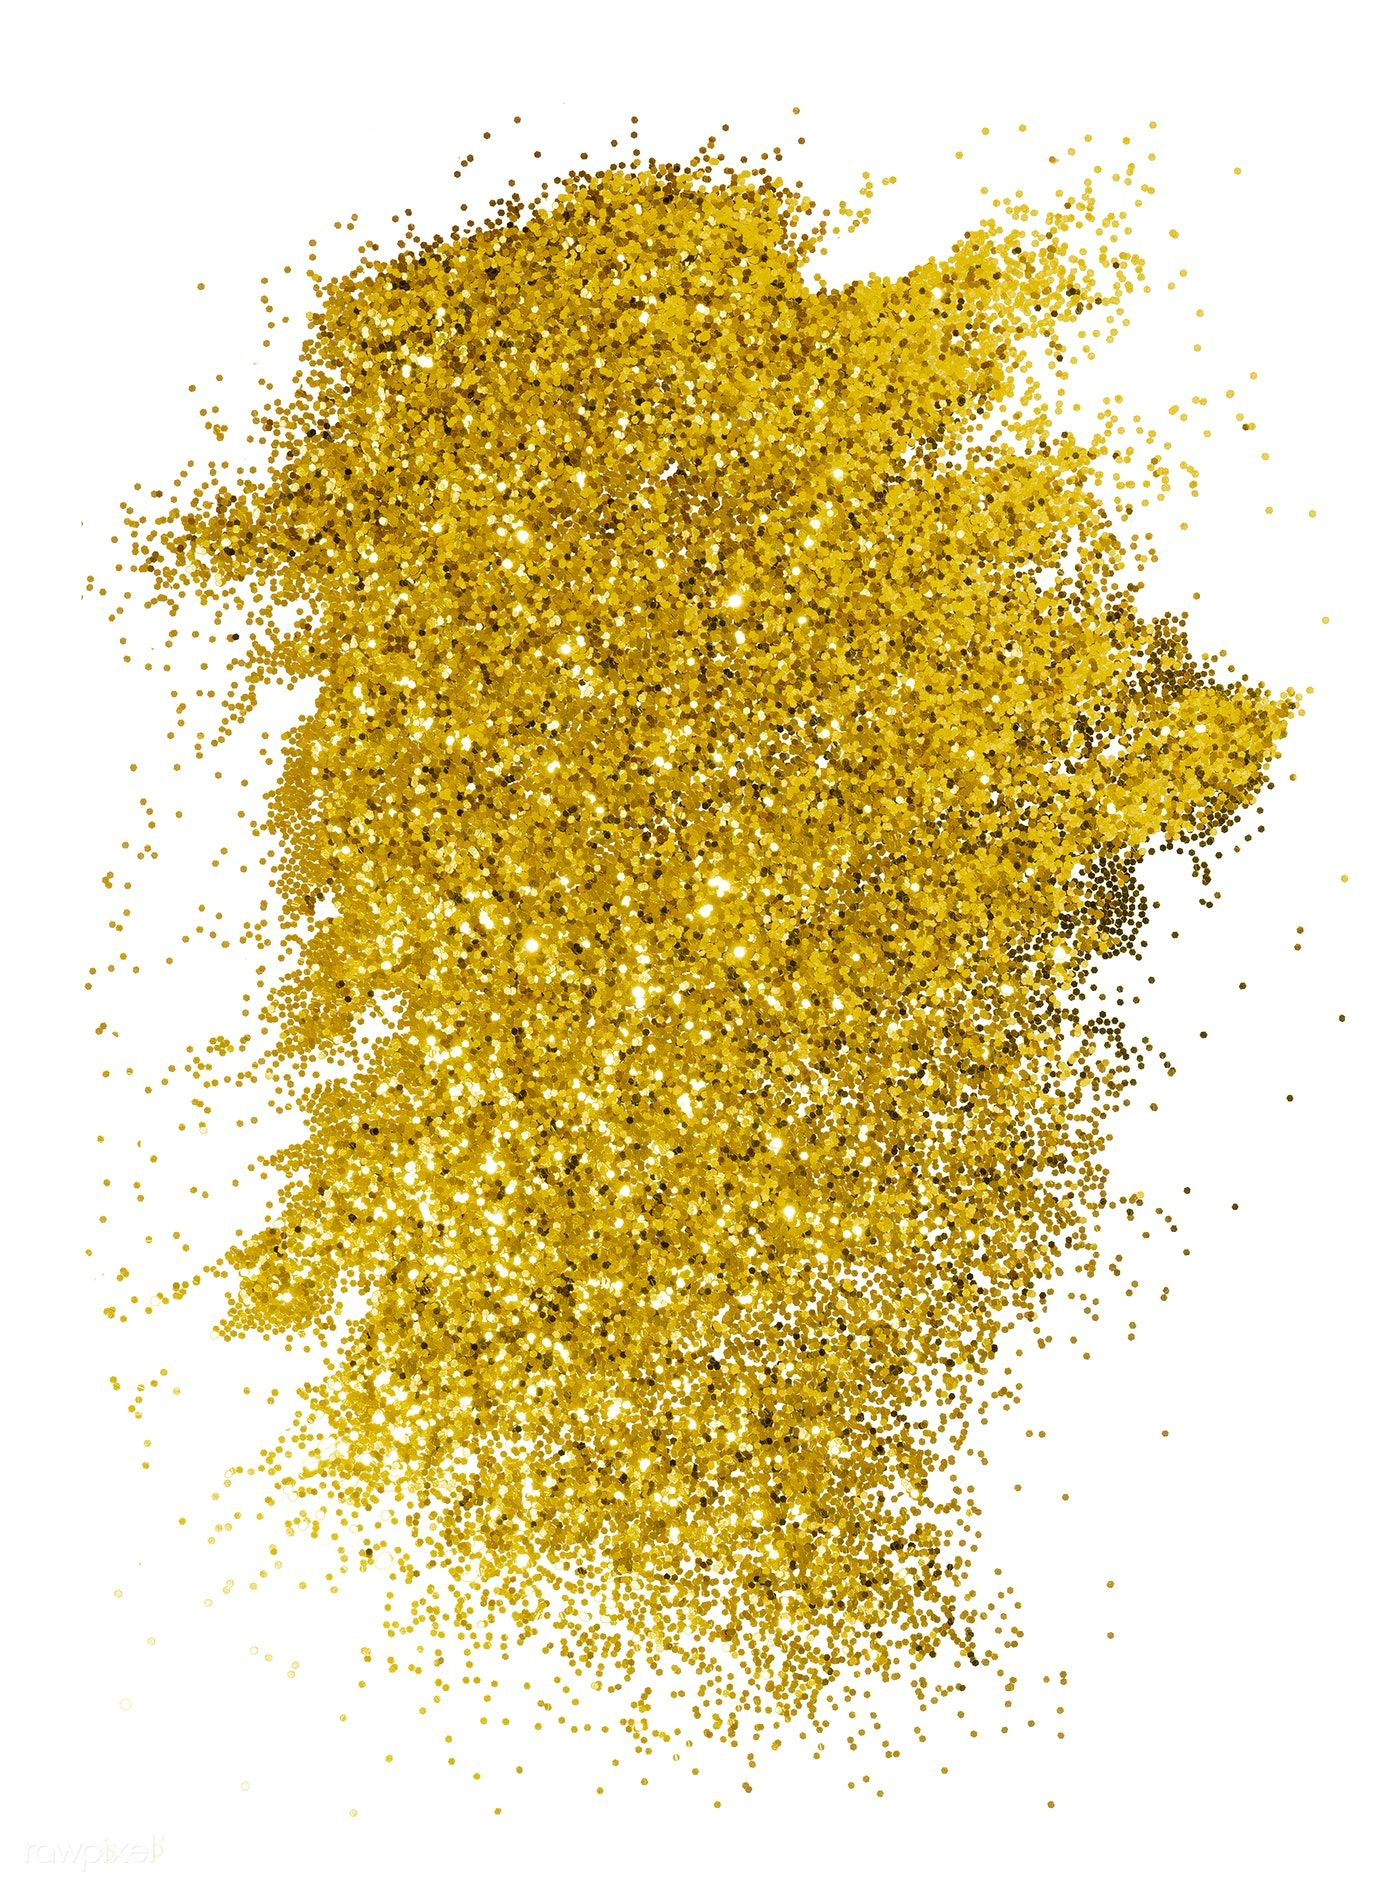 Download Premium Psd Of Festive Sparkly Gold Glitter Background Badge Gold Glitter Background Glitter Background Gold Glitter